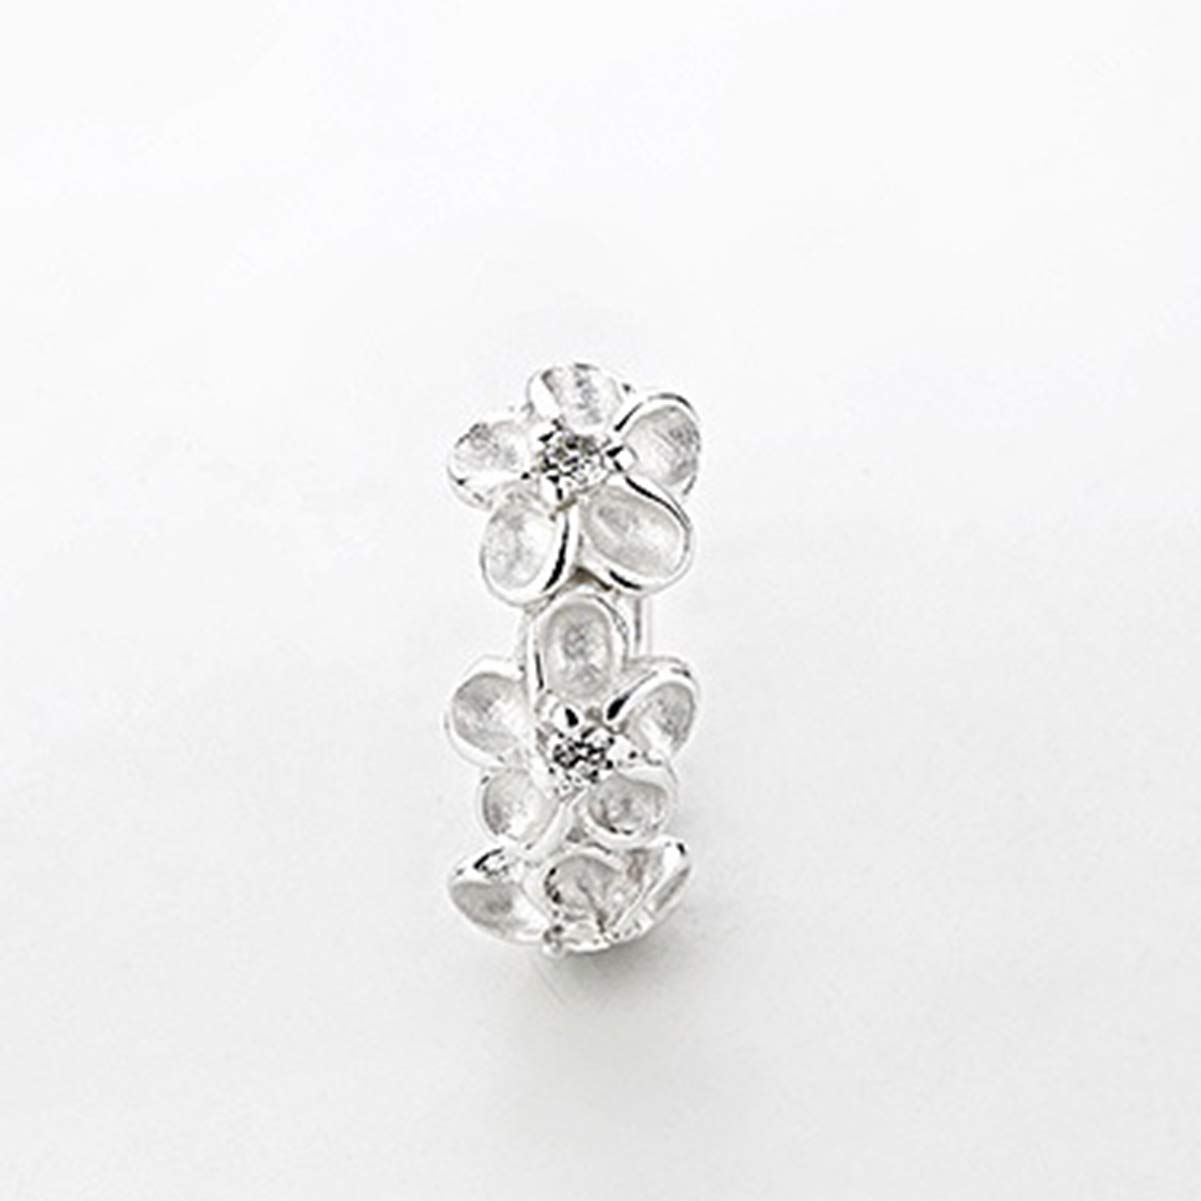 Mini Flower Hoop Earrings Mothers Day Gifts 14MM 925 Silver//18K Rose Gold Plated